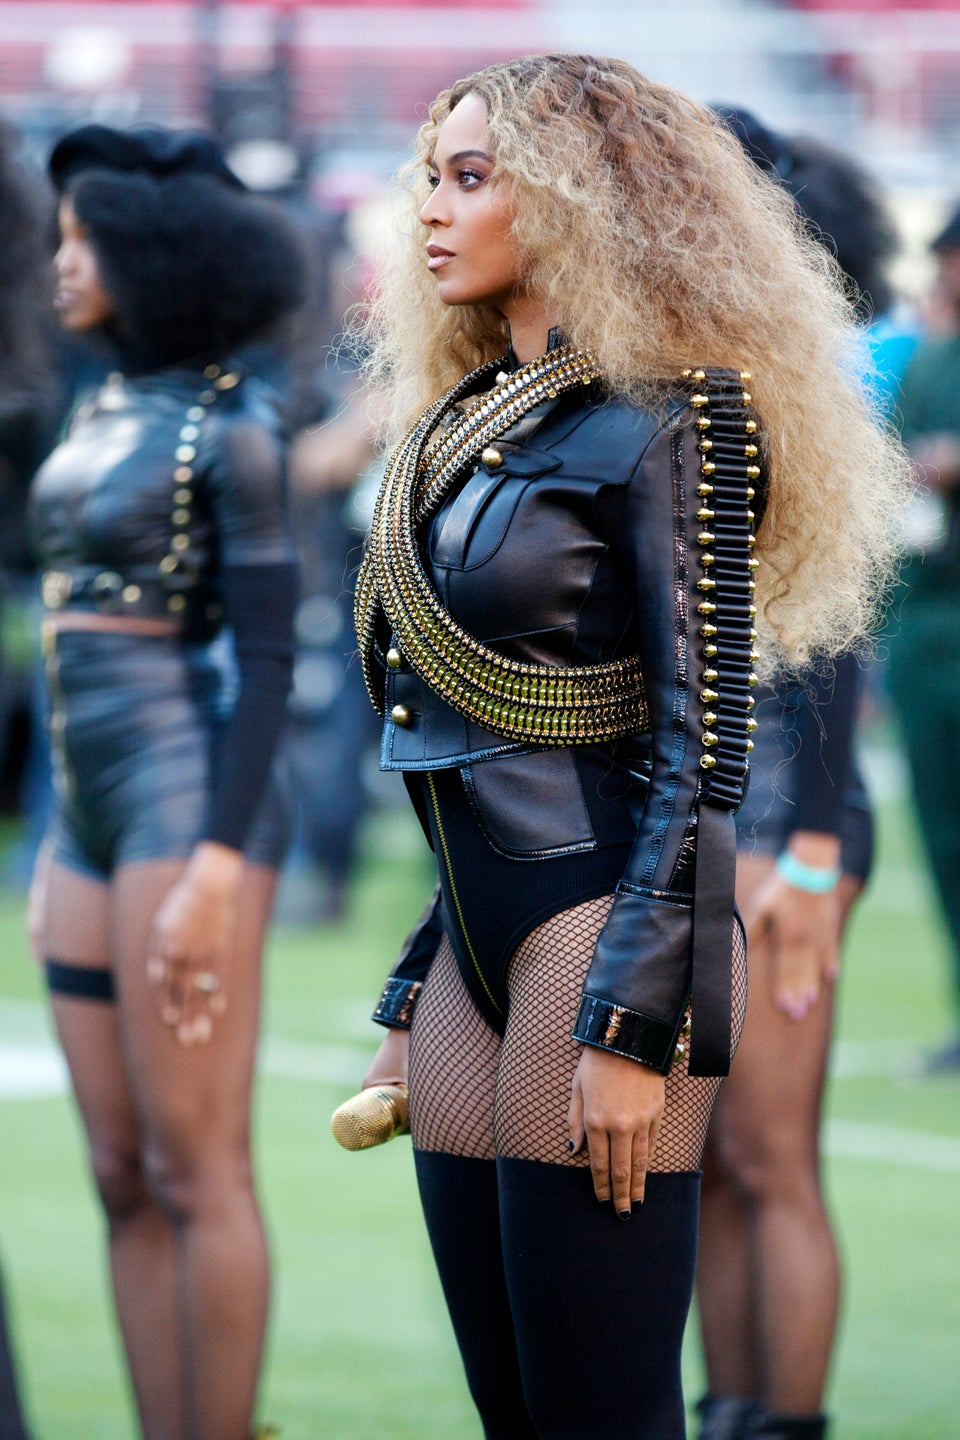 Former NYC Mayor Rudy Guiliani Says Beyonce's Super Bowl Performance 'Attacked' Police Officers